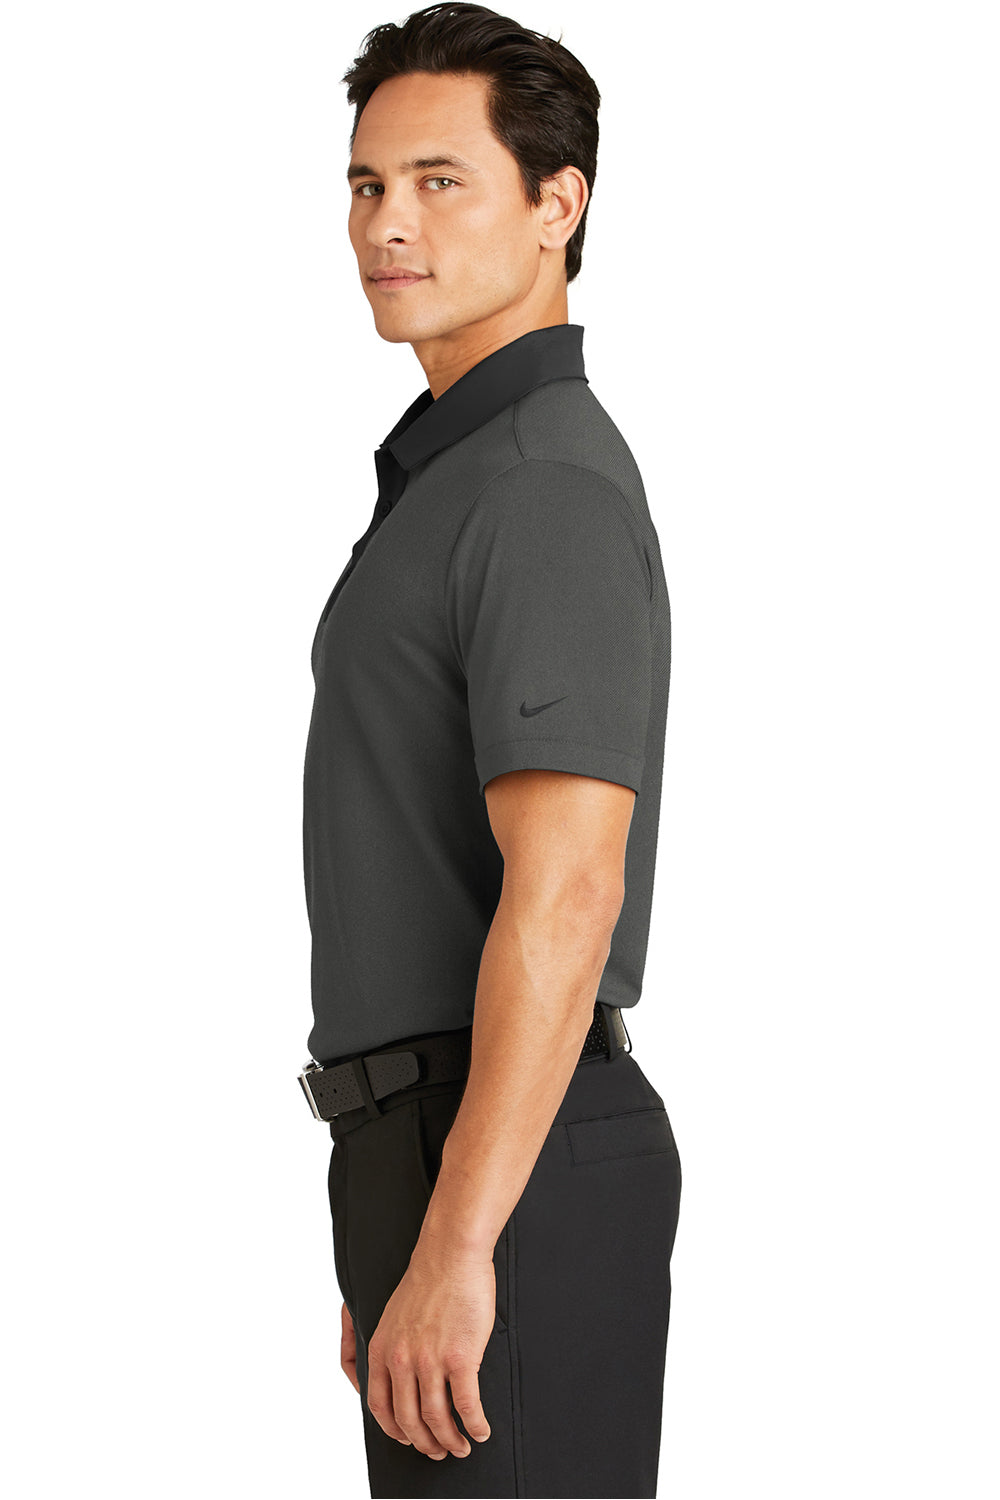 Nike 779798 Mens Dri-Fit Moisture Wicking Short Sleeve Polo Shirt Heather Black Side